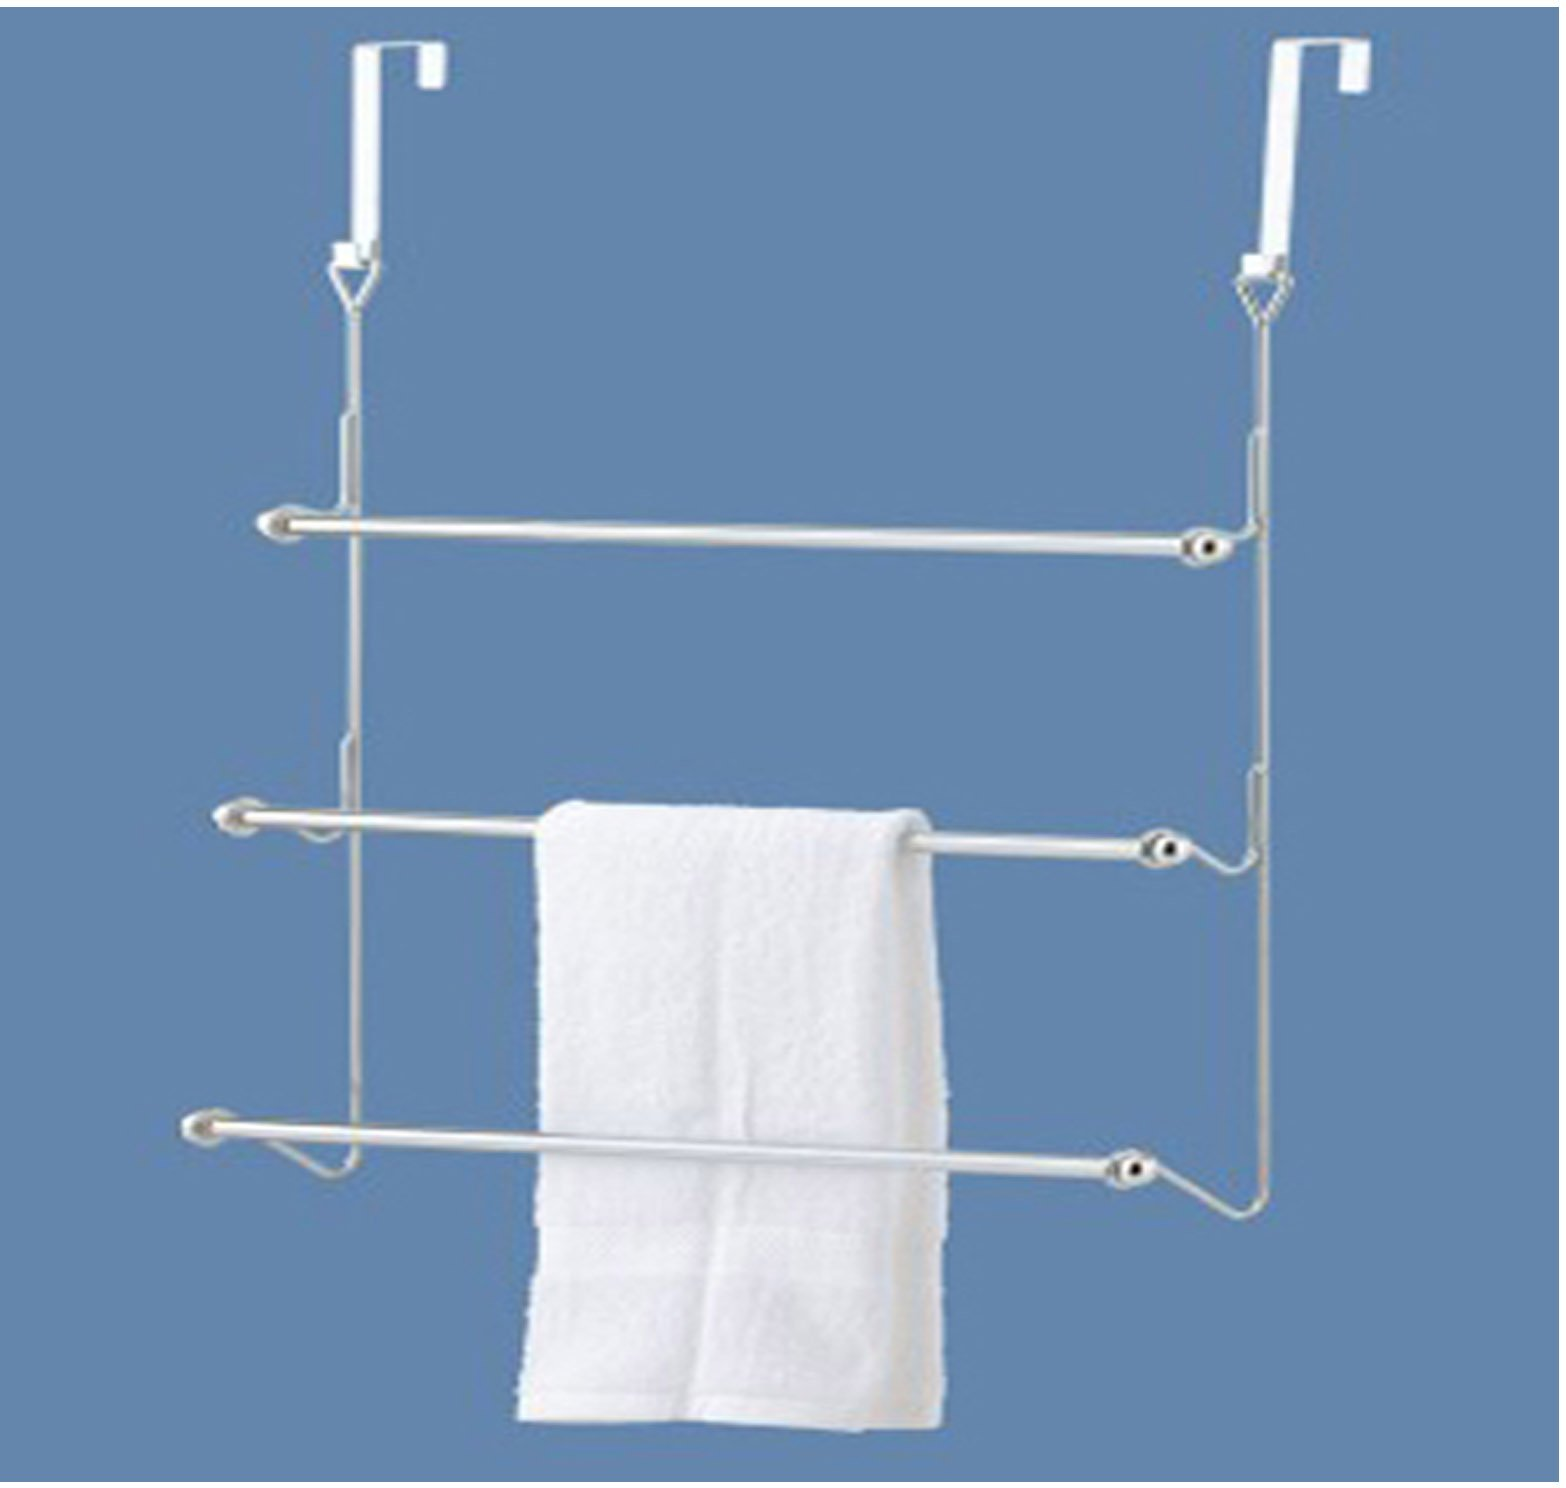 Best over the door towel racks for bathroom | Amazon.com